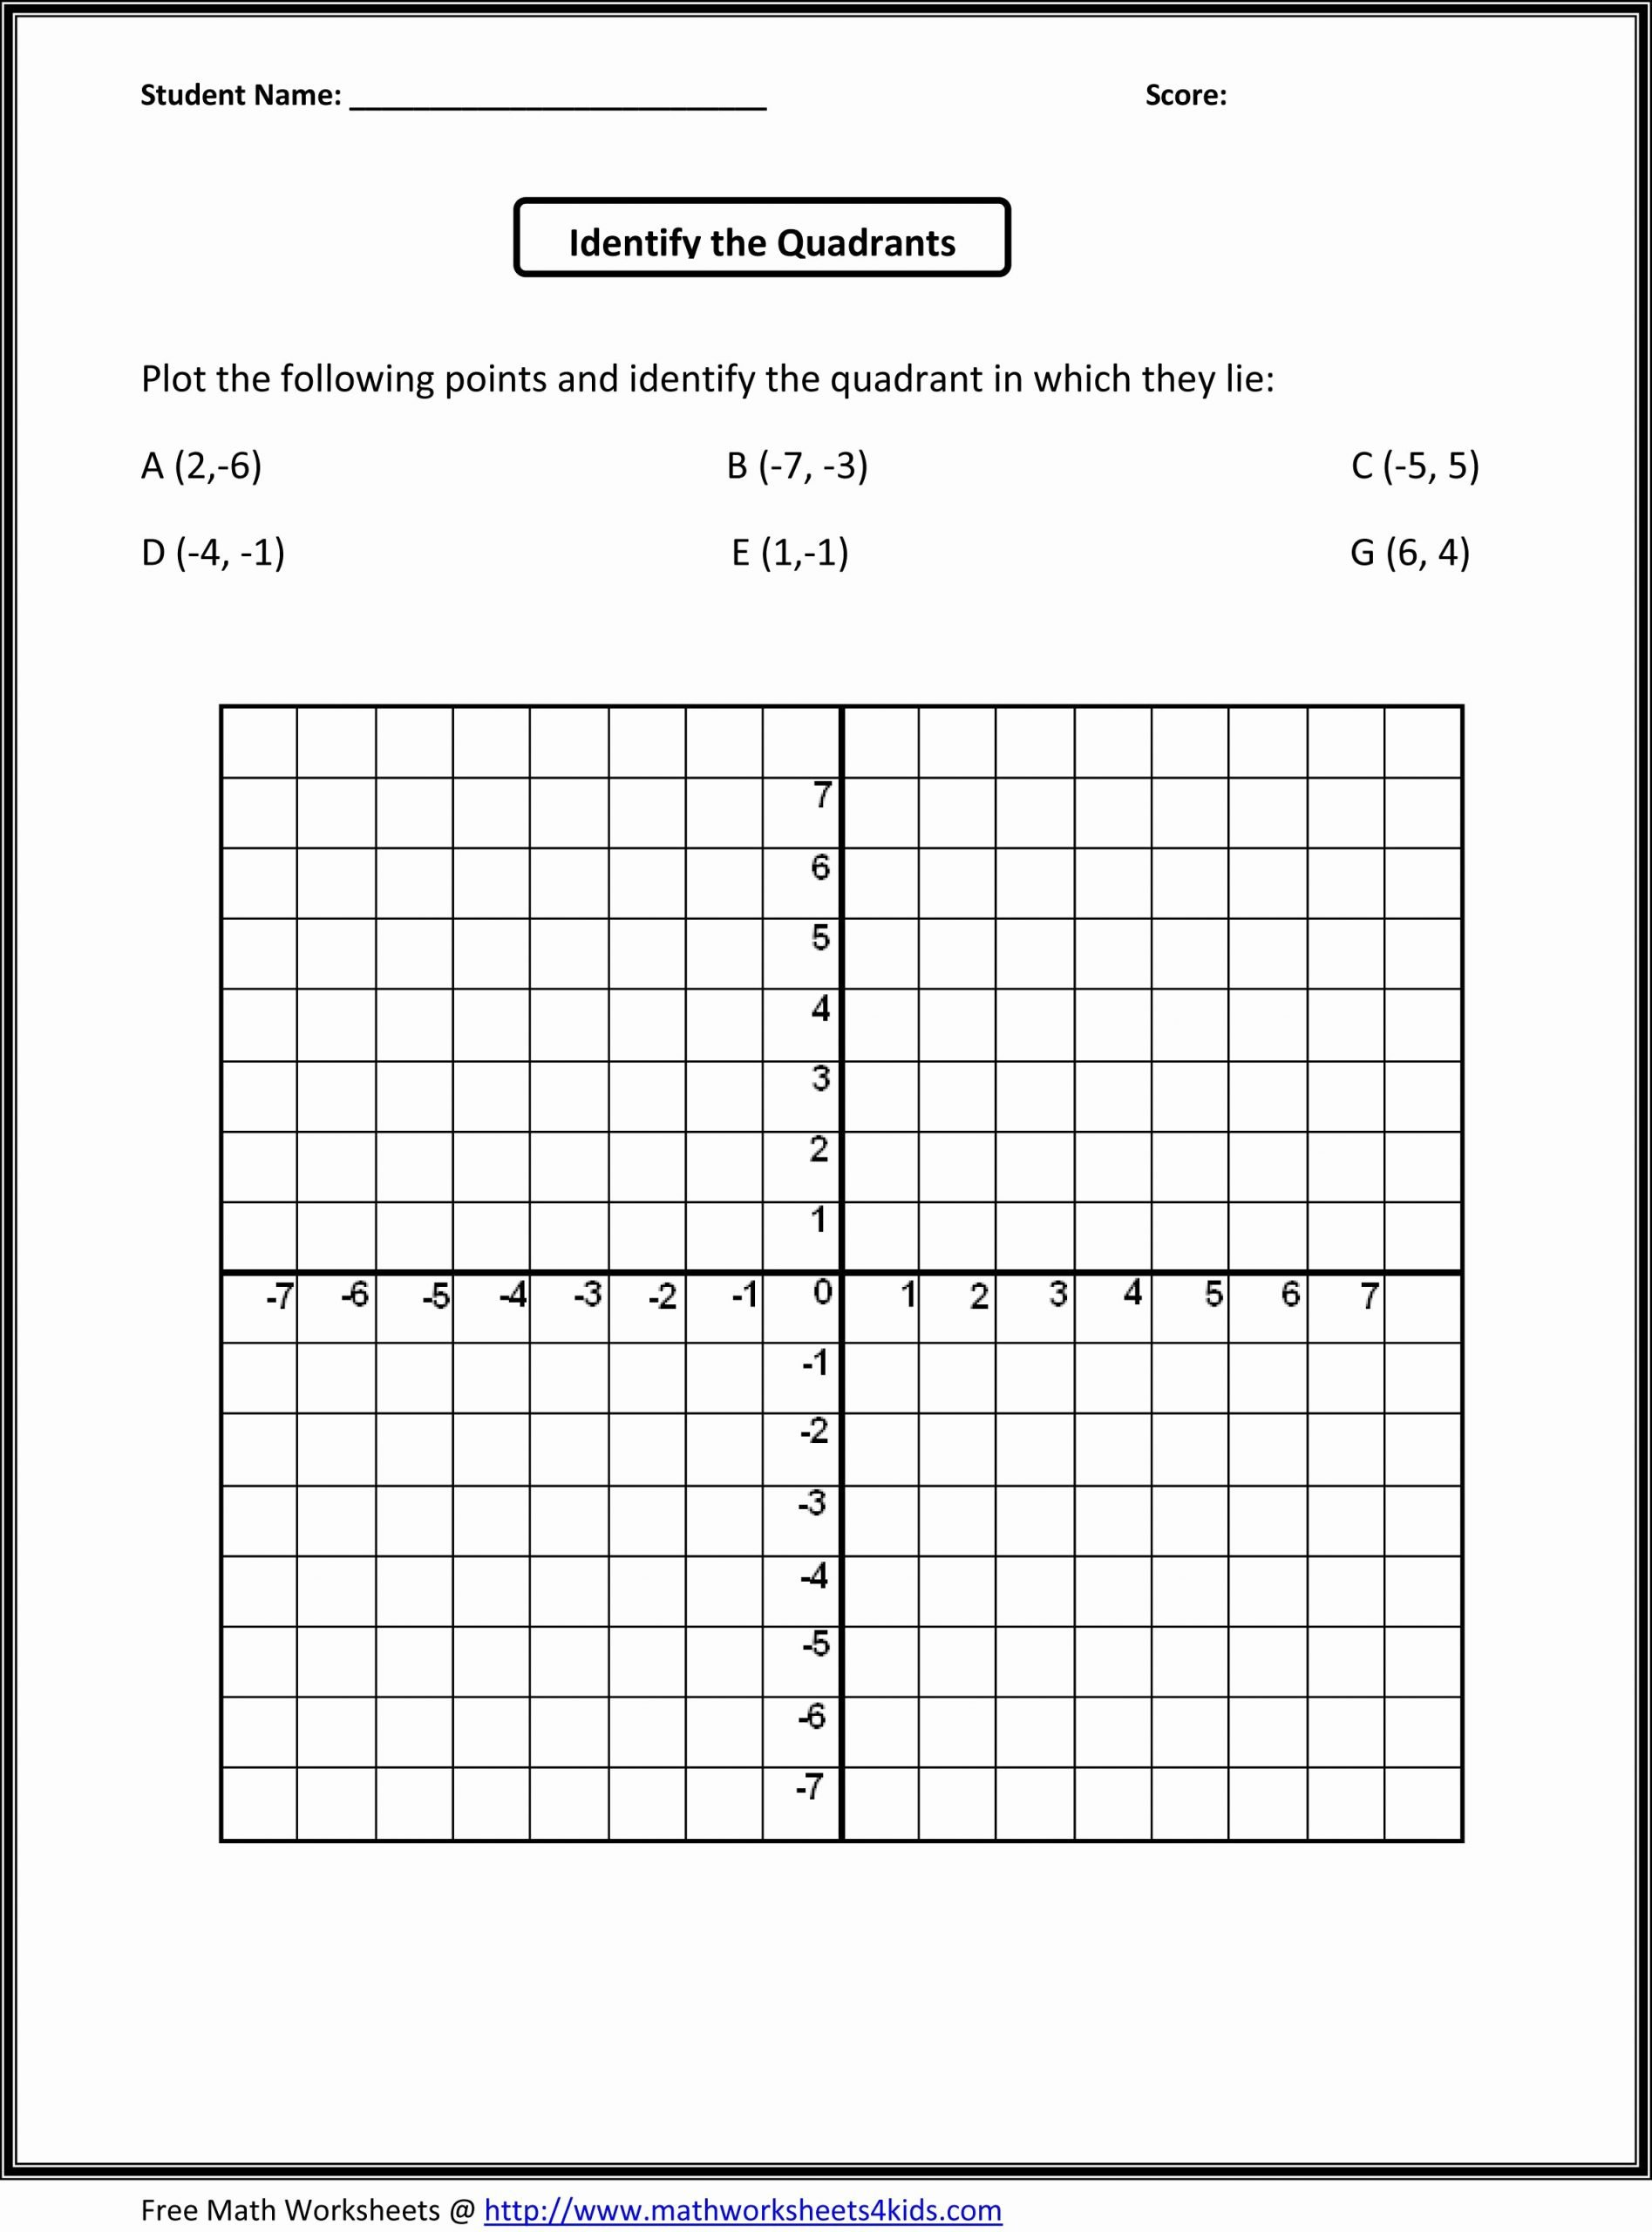 Fifth Grade Multiplication Worksheets Lovely 5th Grade Math Worksheets 5th Grade Math Worksheets